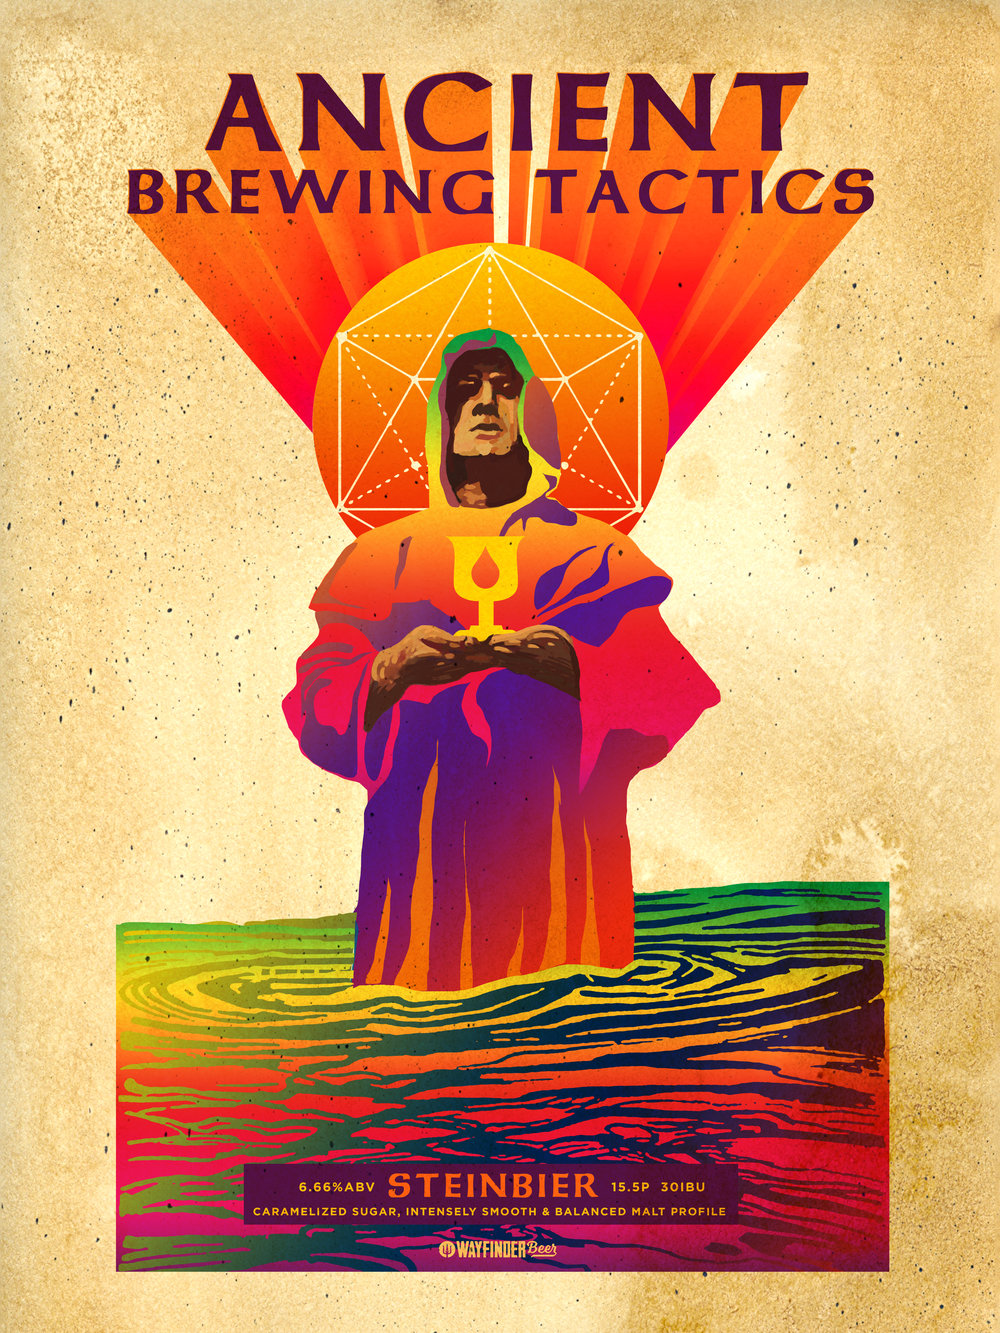 wayfinder-ancient-brewing-tactics-trappist